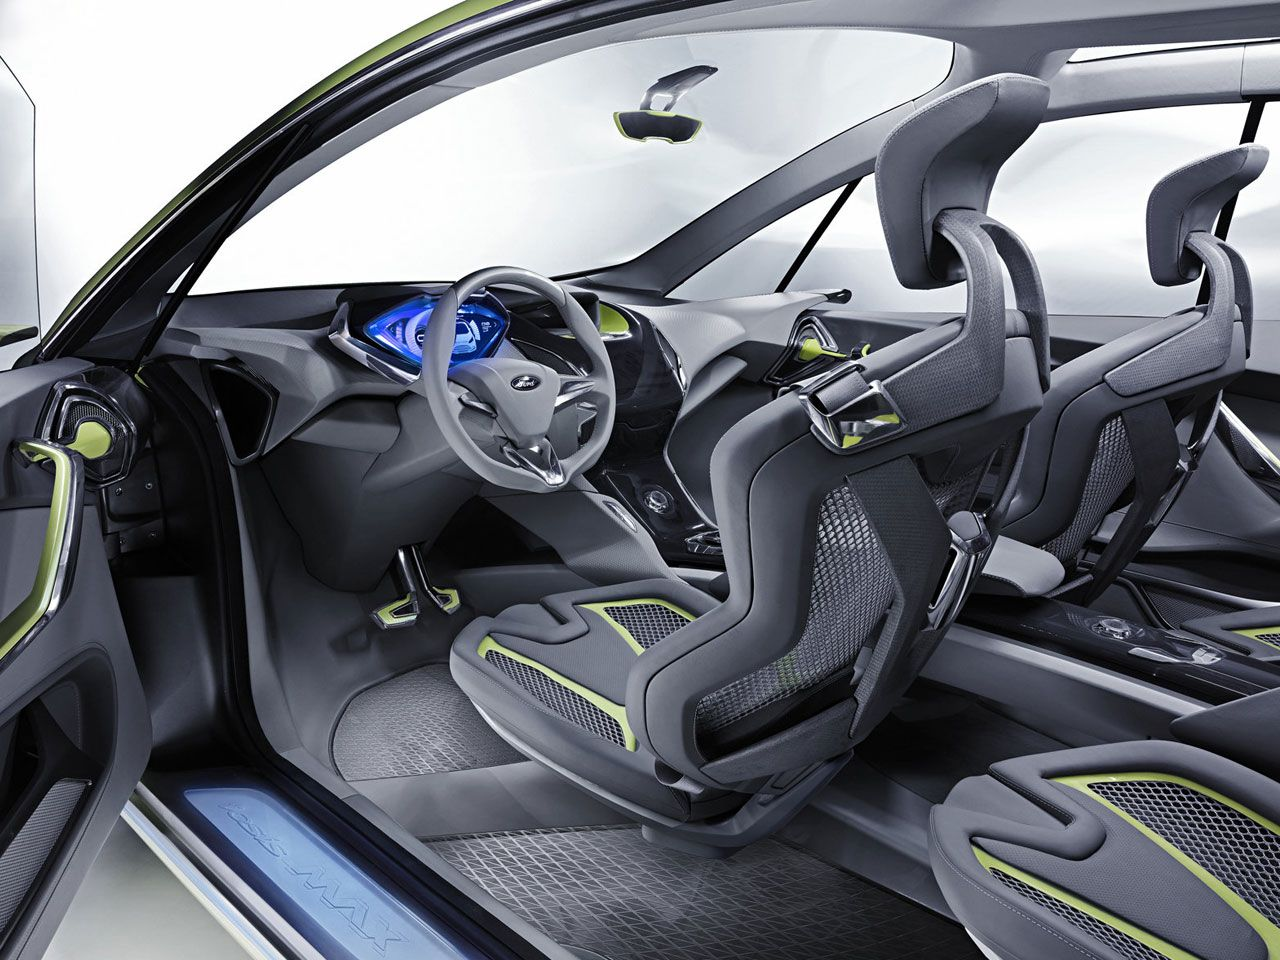 Ford Iosis Max Concept Interior Car Body Design Futuristic Cars Interior Concept Car Interior Car